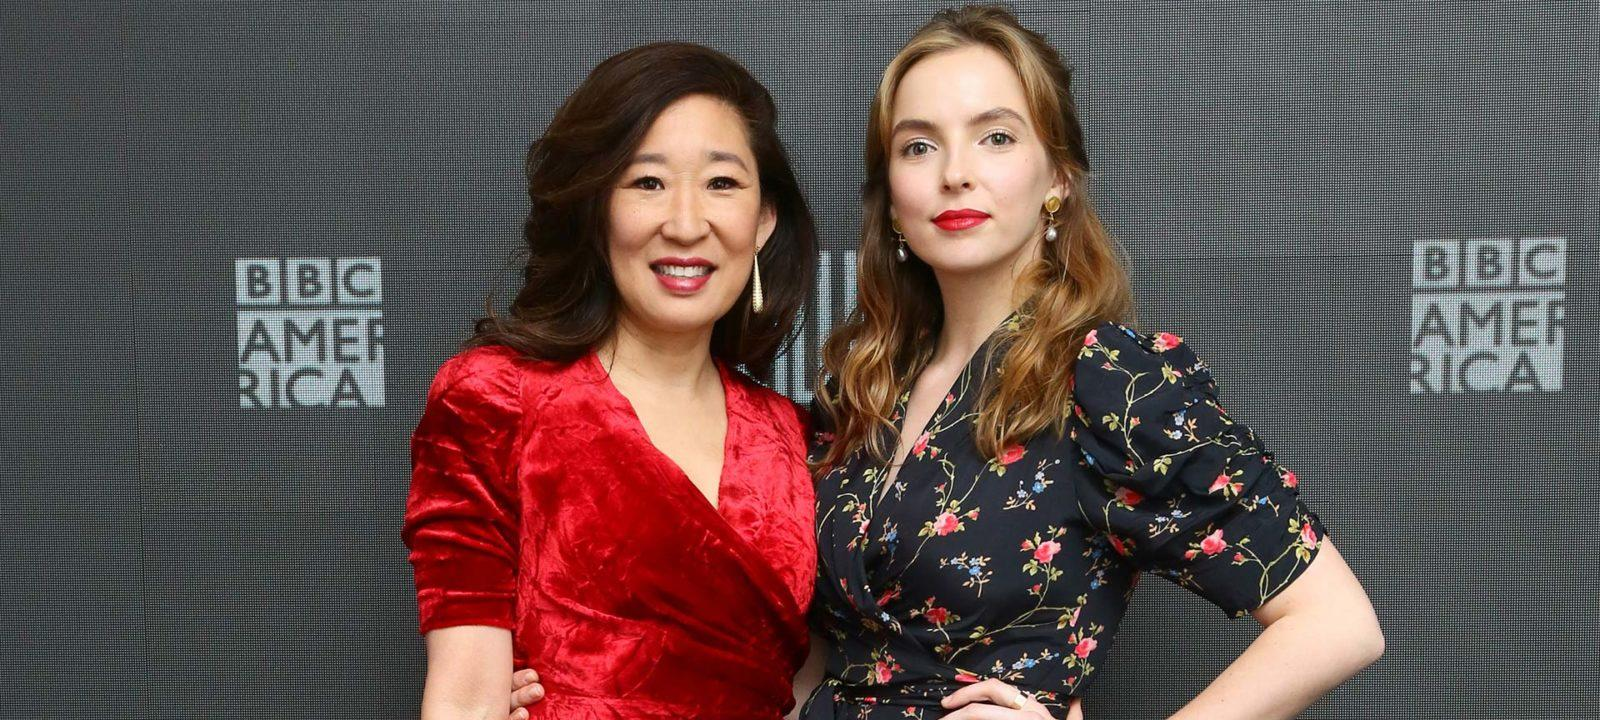 BBC America's 'Killing Eve' Renewed for a Second Season Ahead of Its ...